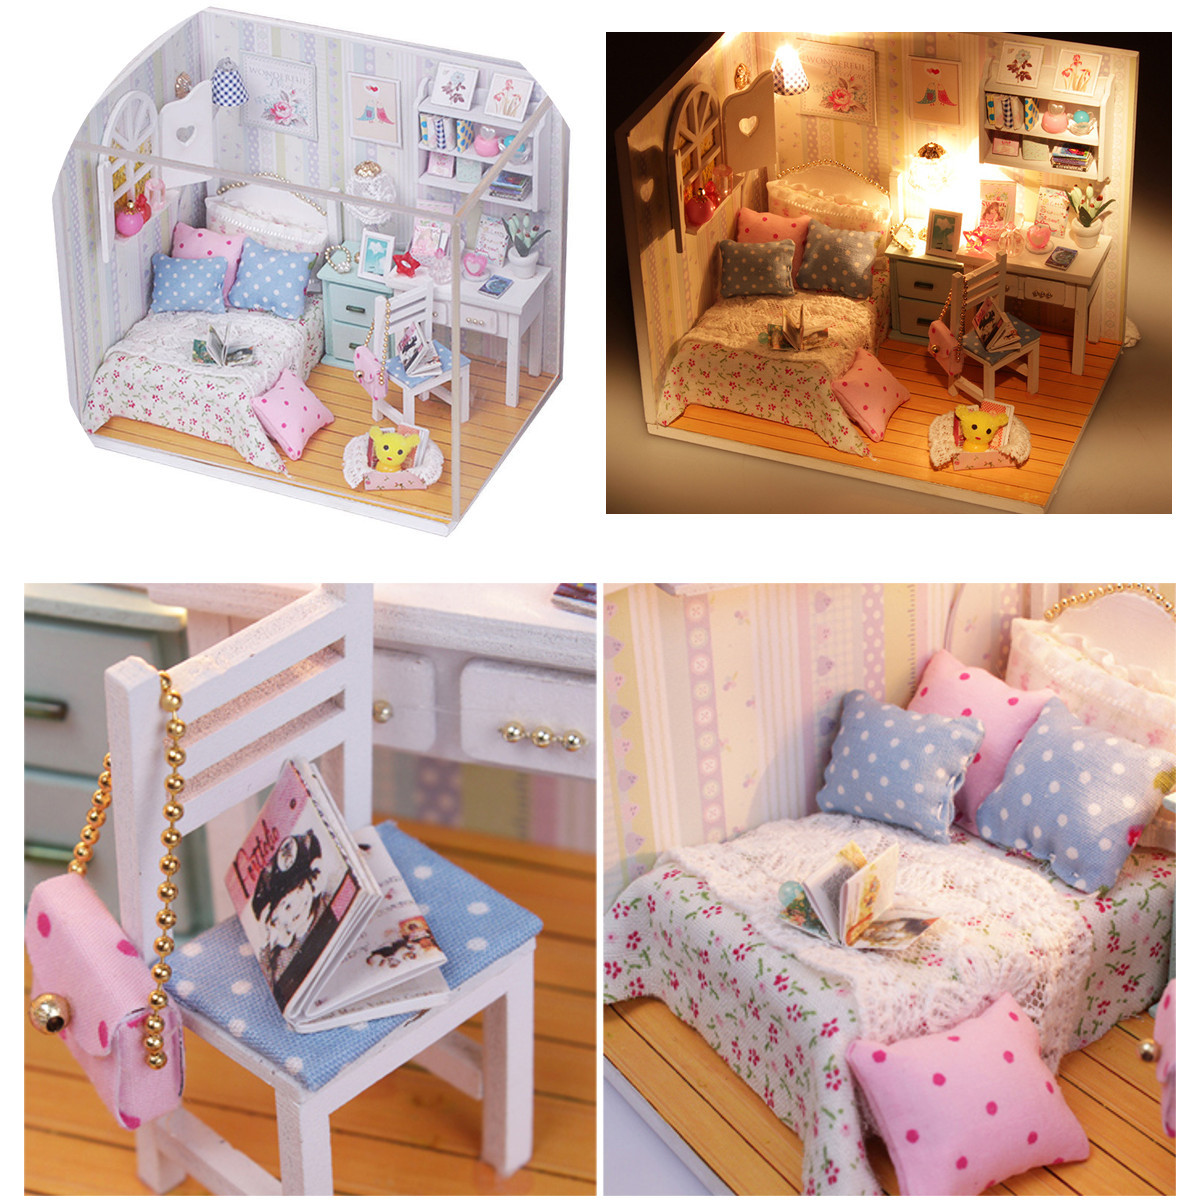 DIY Wood Dollhouse Miniature With LED Furniture Cover